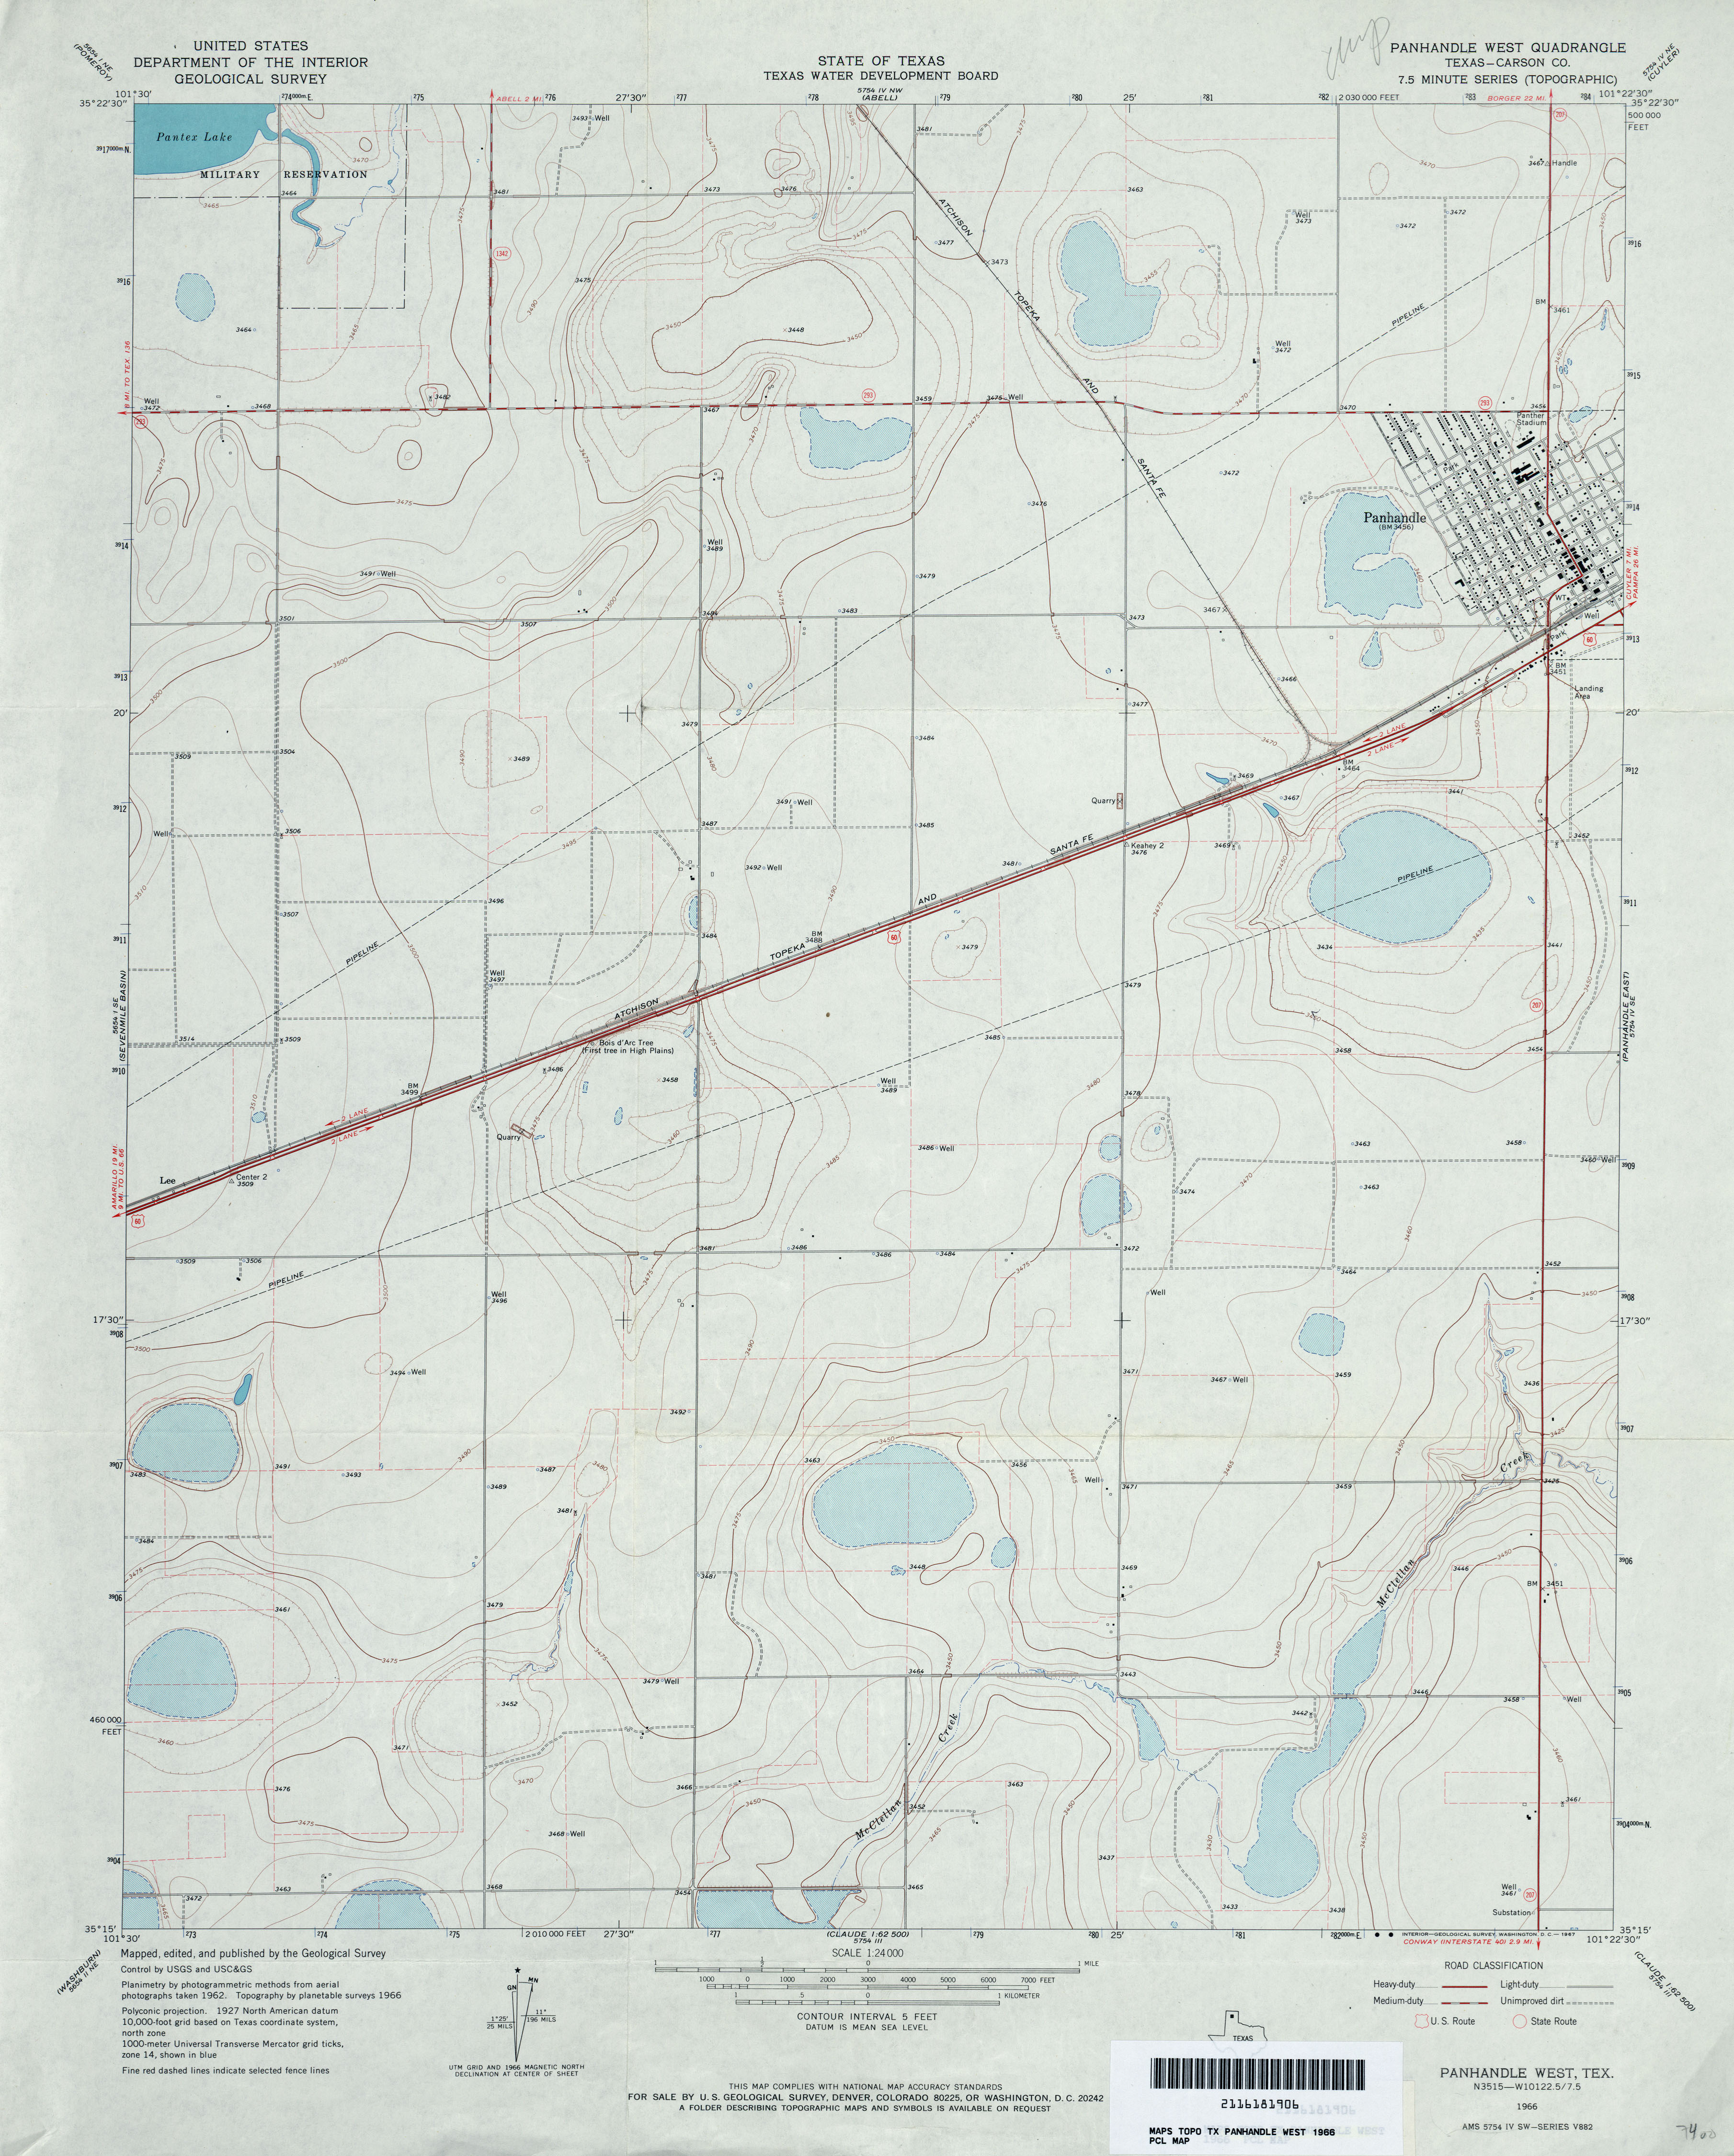 Texas Topographic Maps - Perry-Castañeda Map Collection - UT Library ...